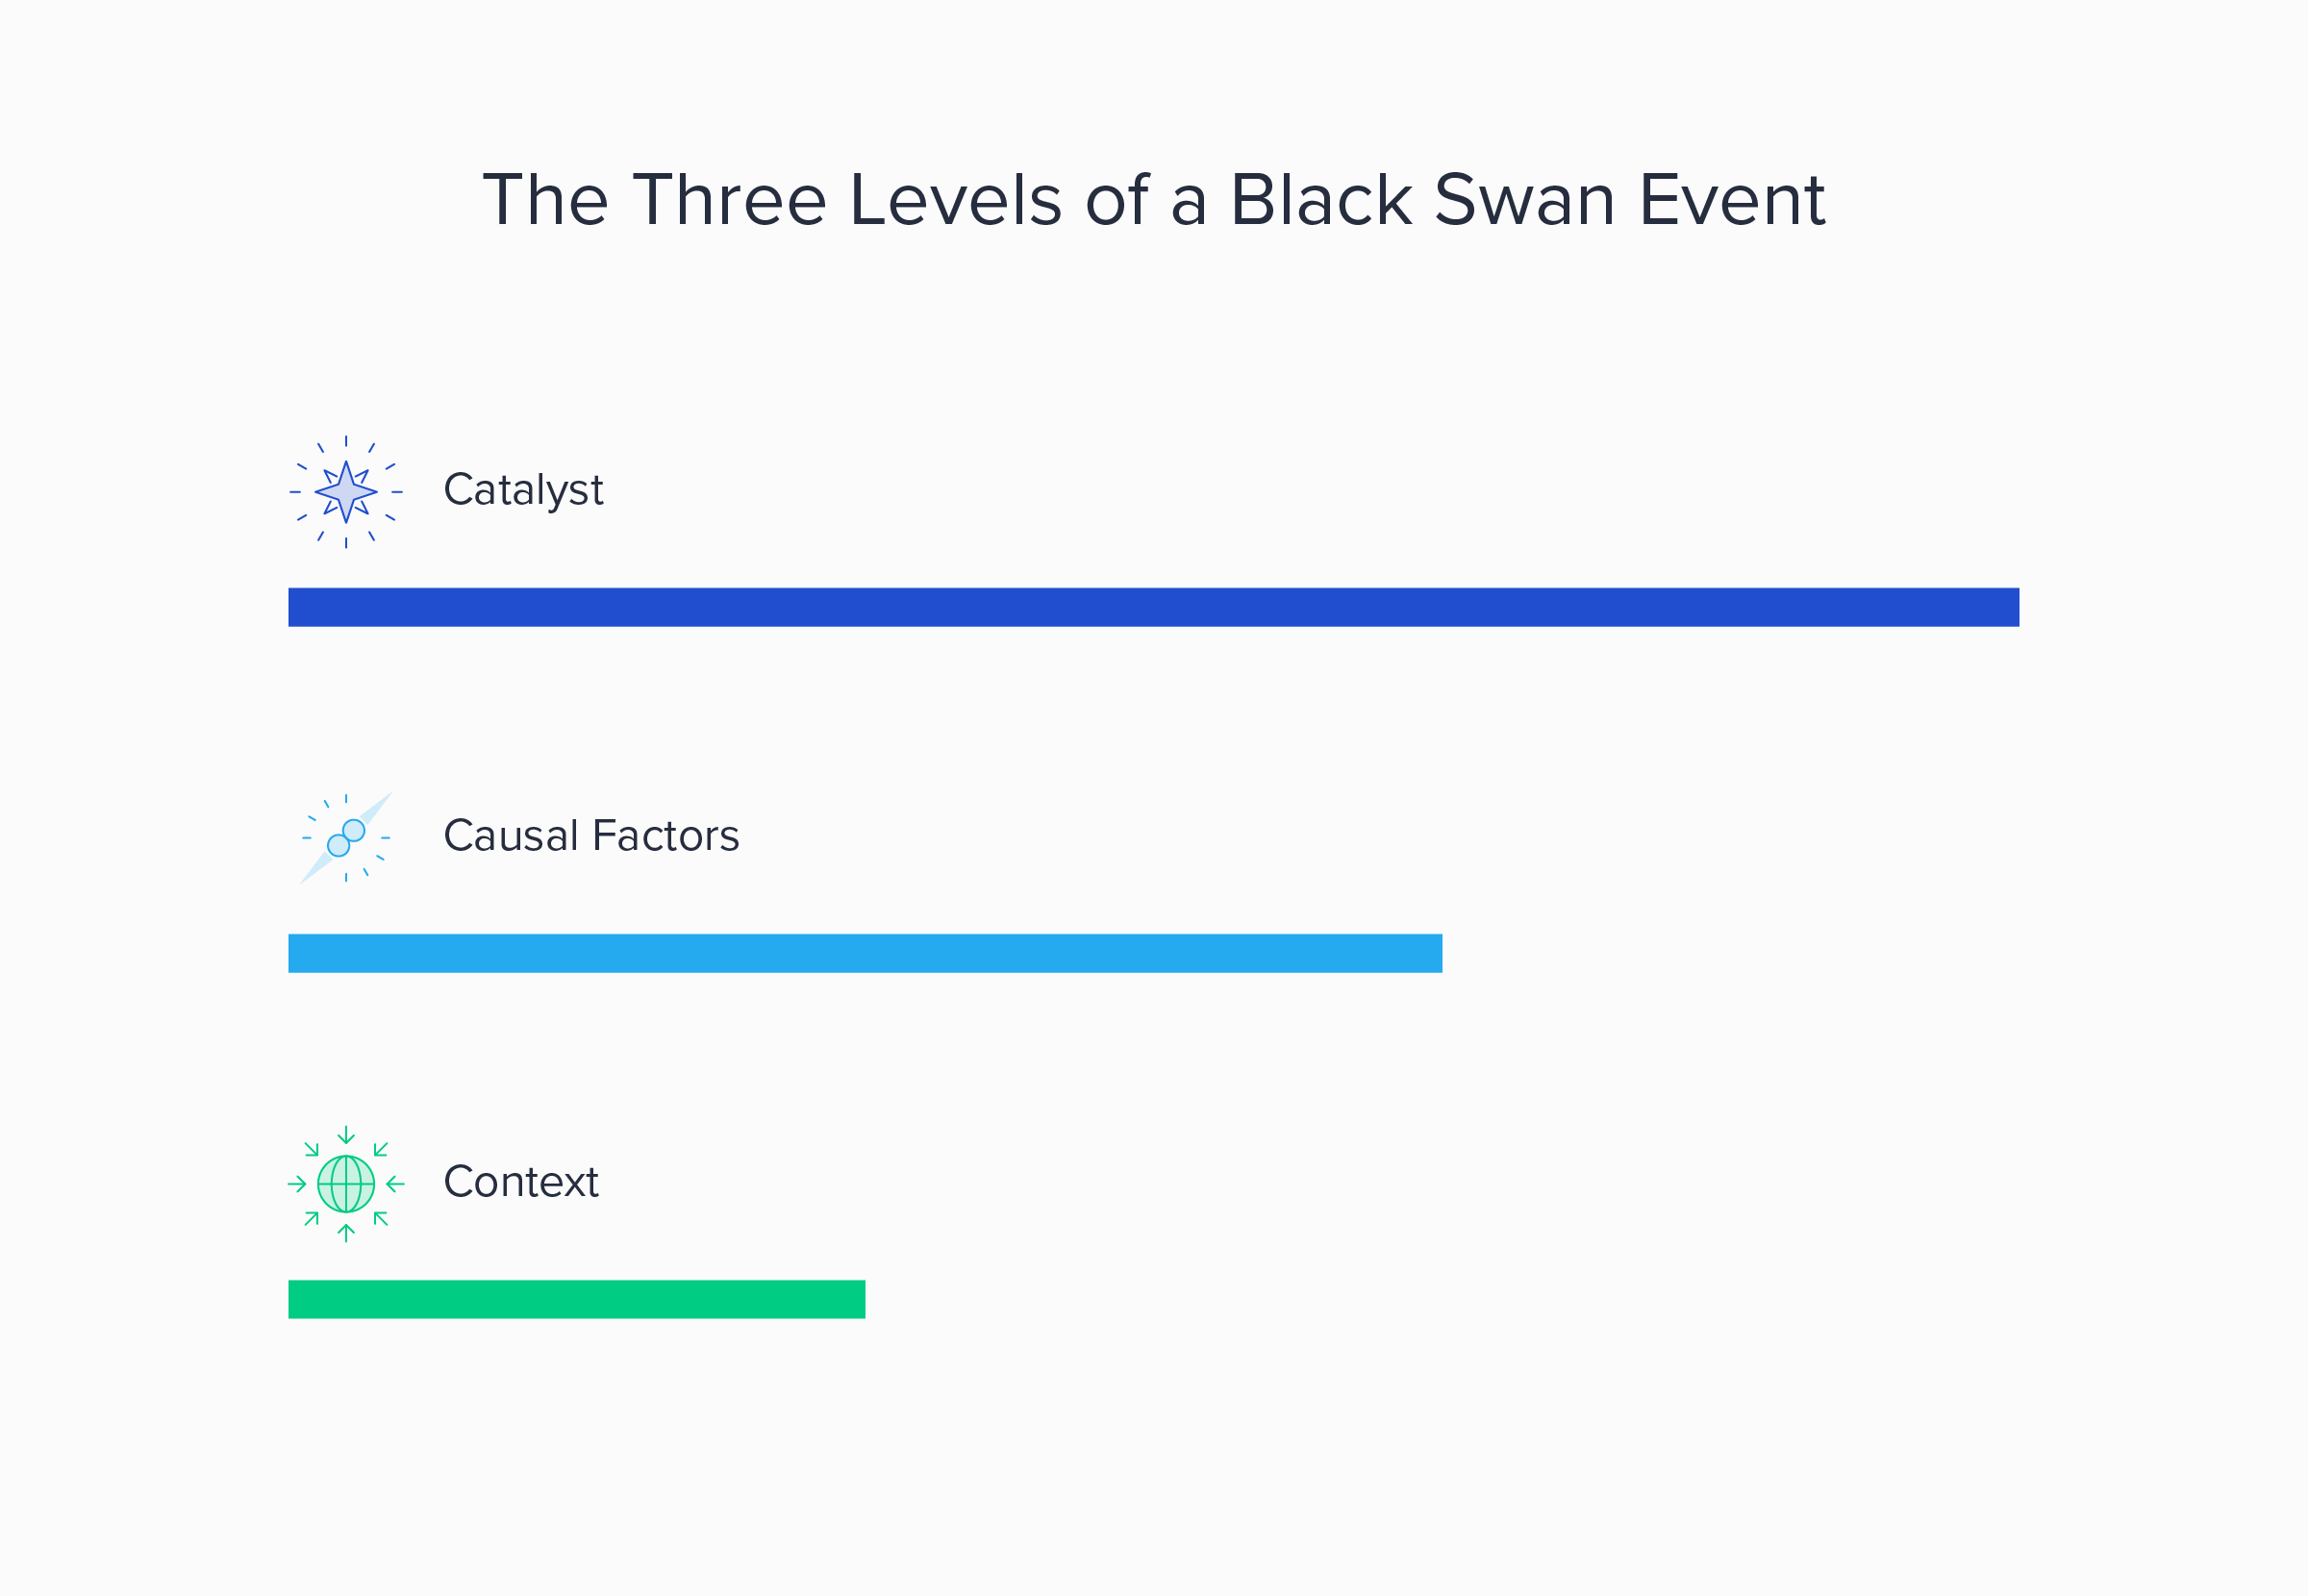 Three levels of a black swan event